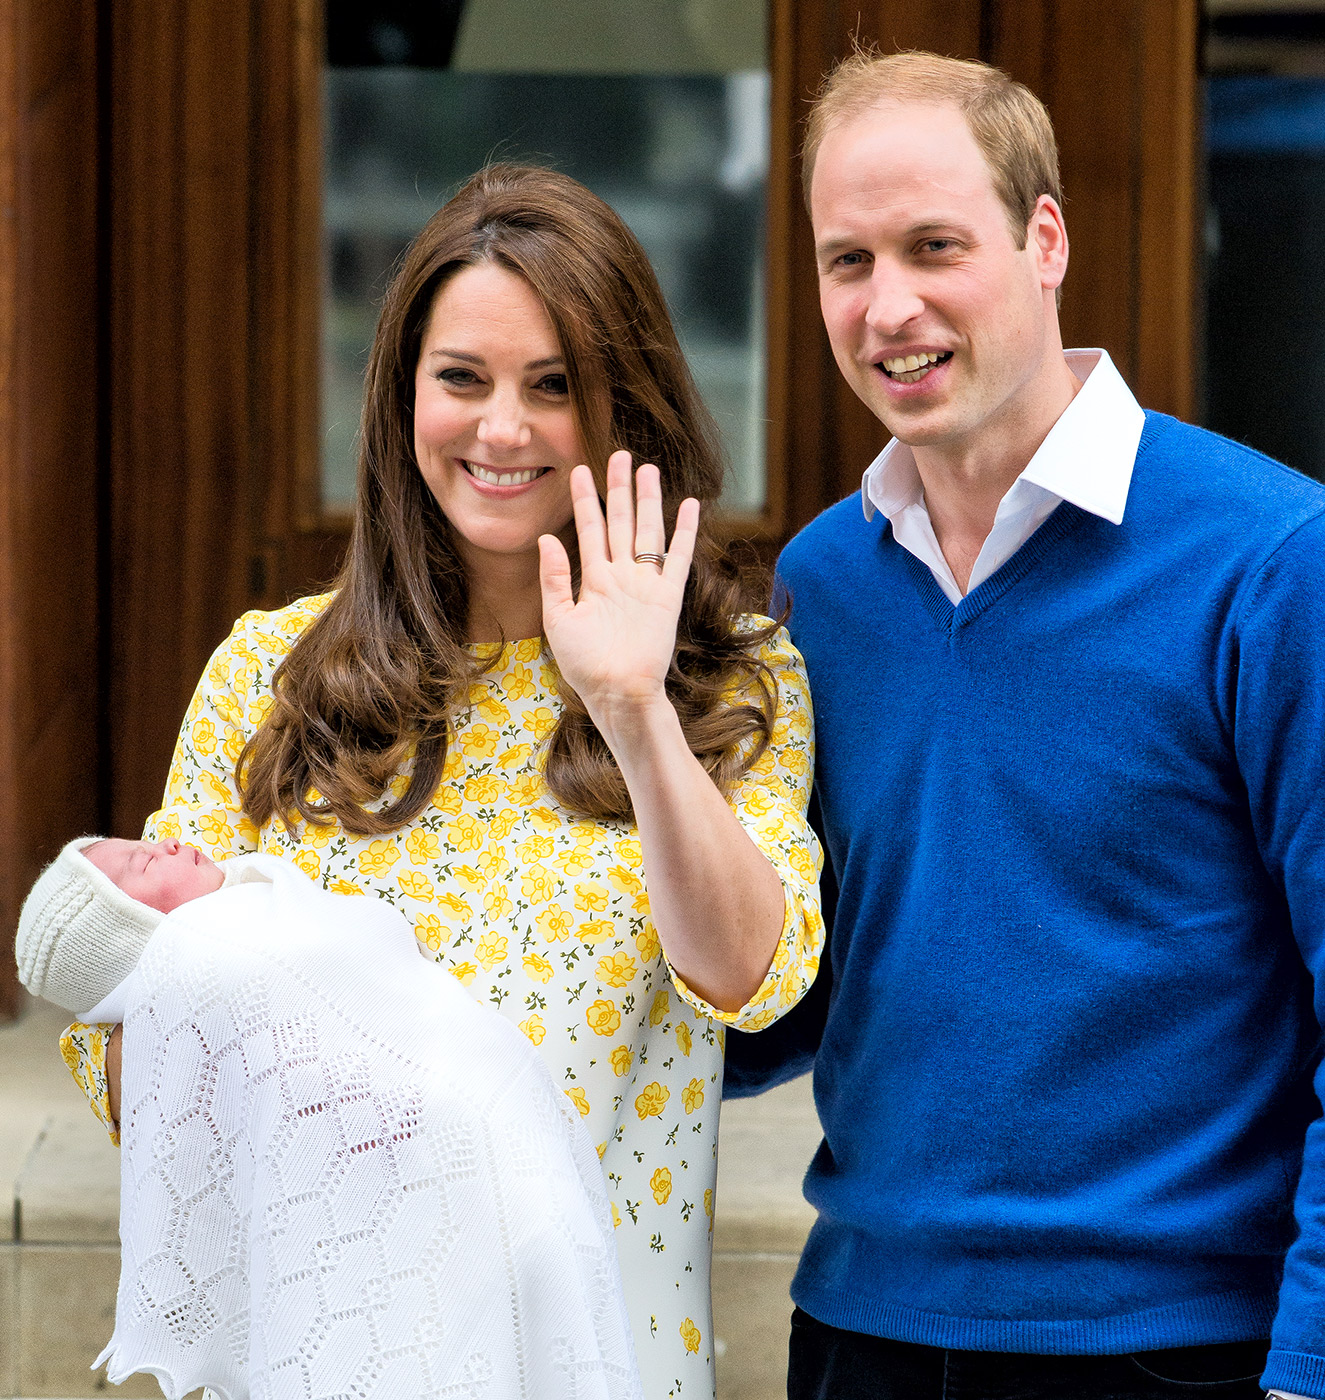 Kate Middleton And Princess Charlotte In Stylish Yellow